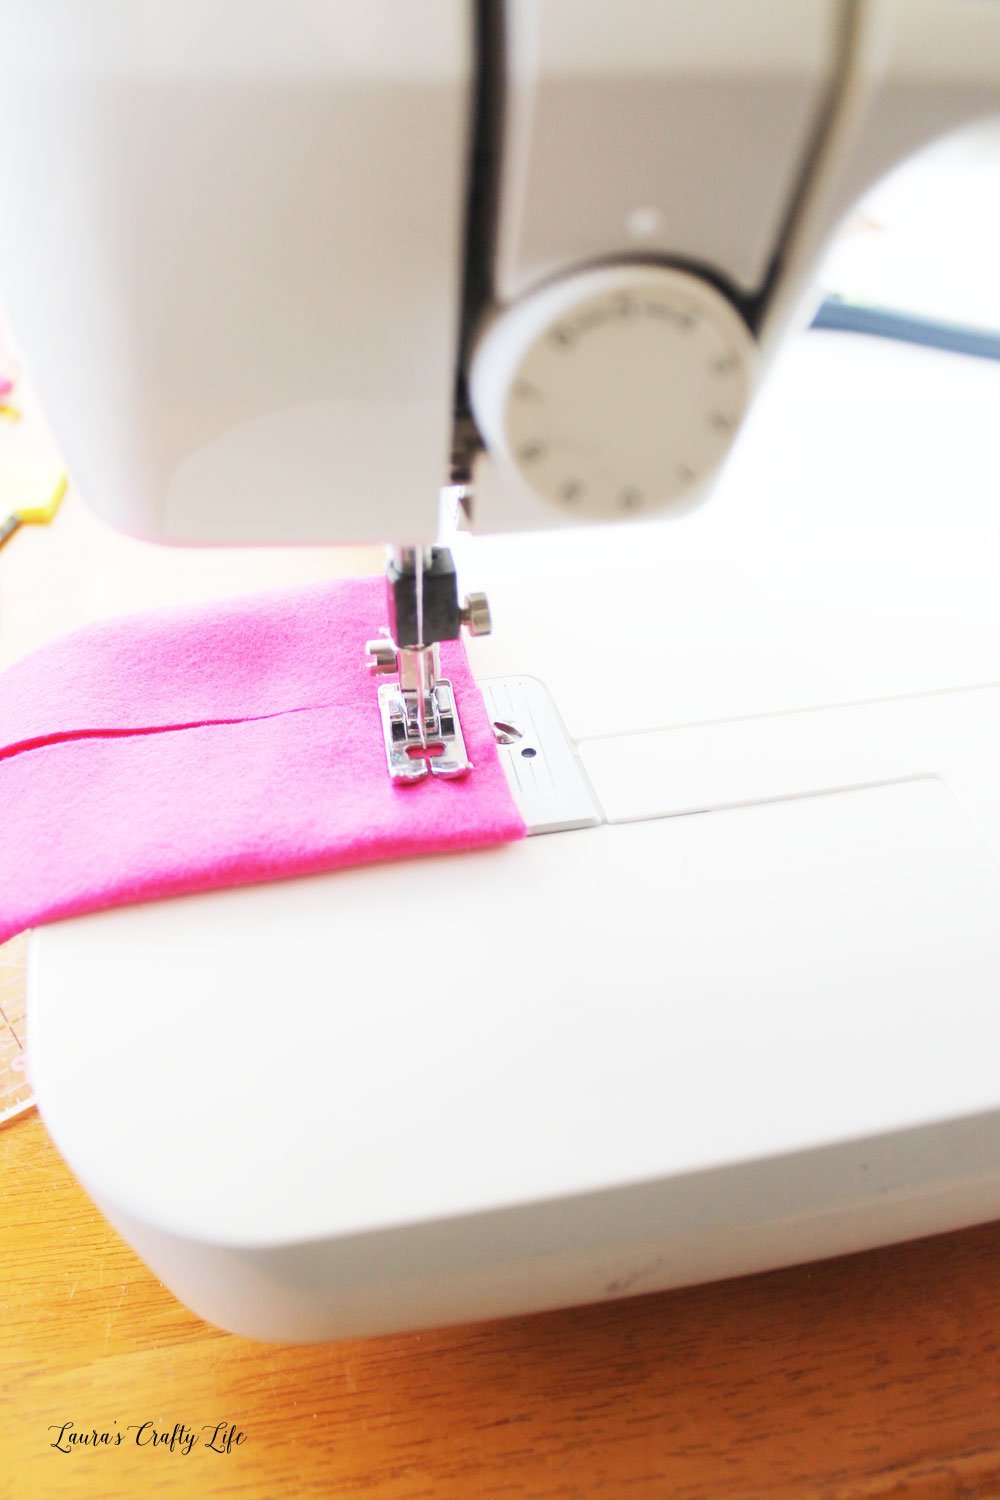 Sew sides of tissue case